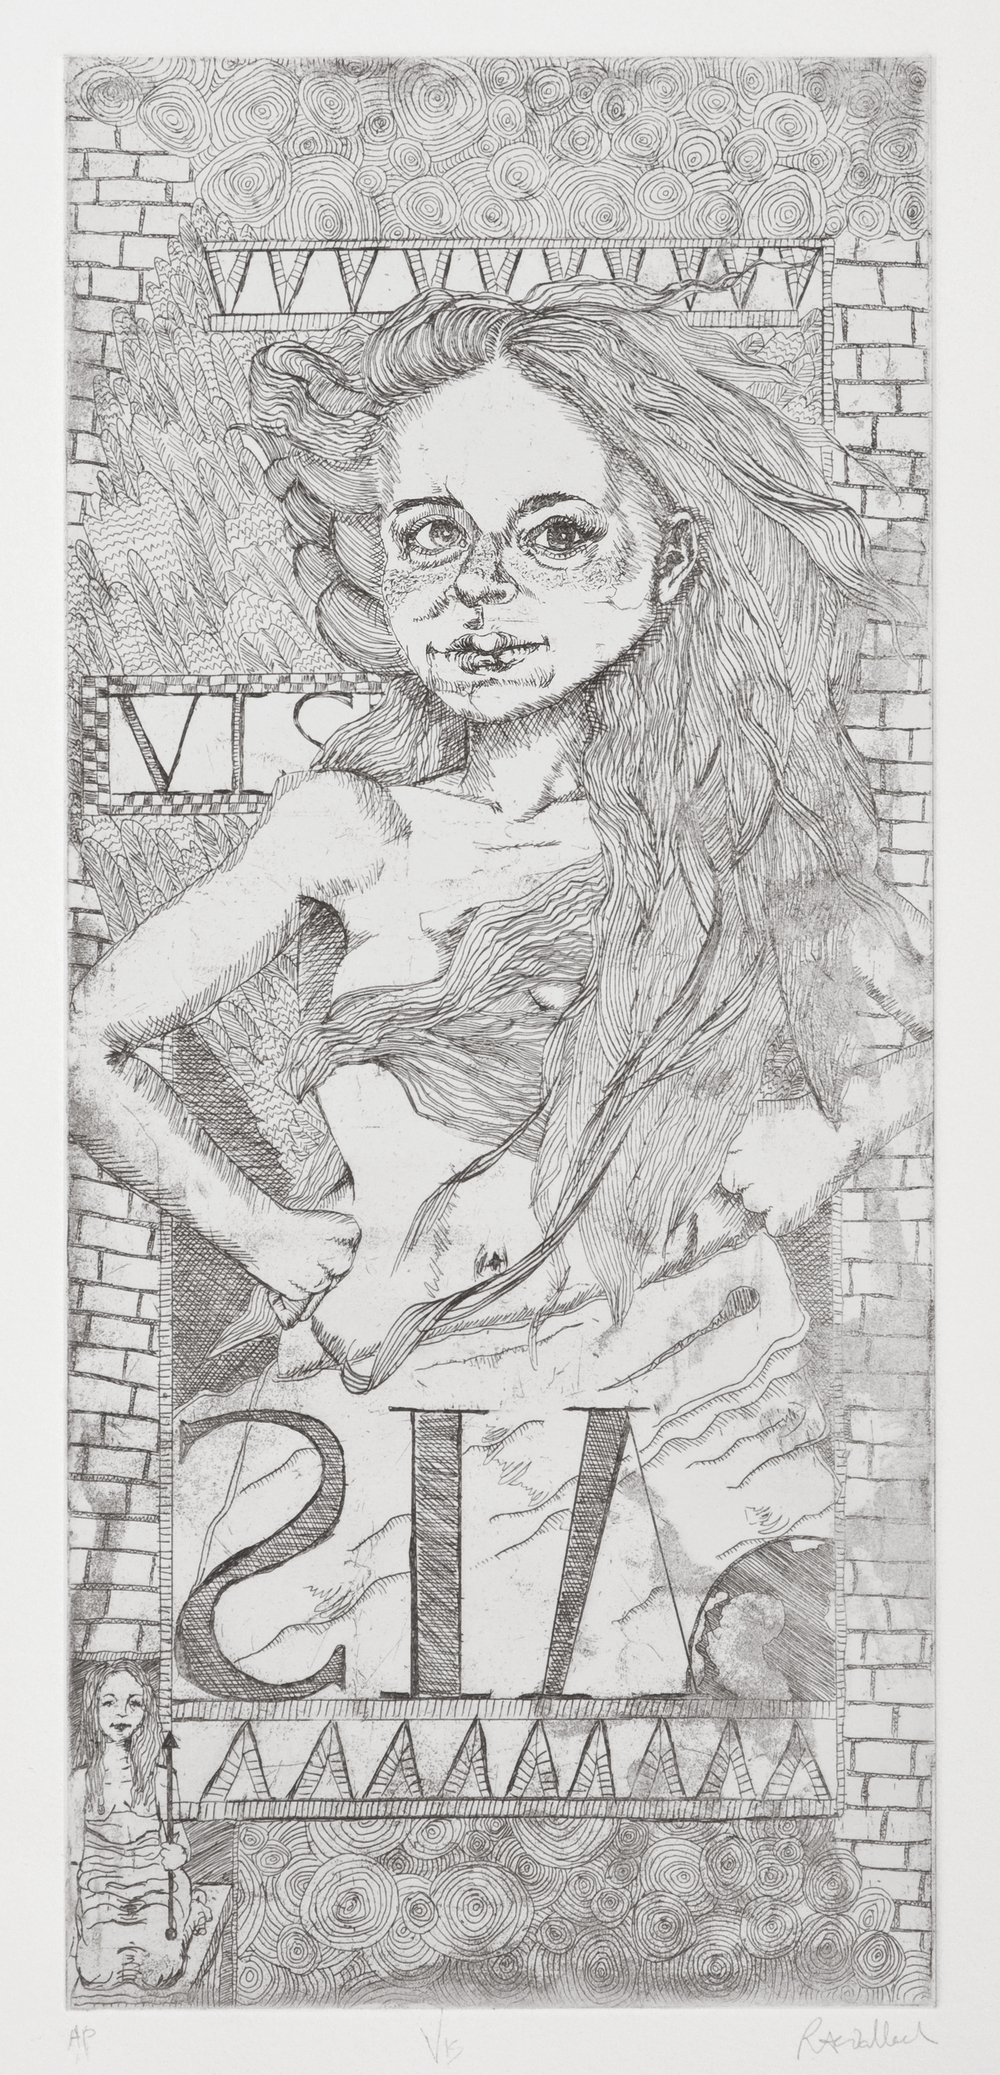 vis , etching on paper, 2005